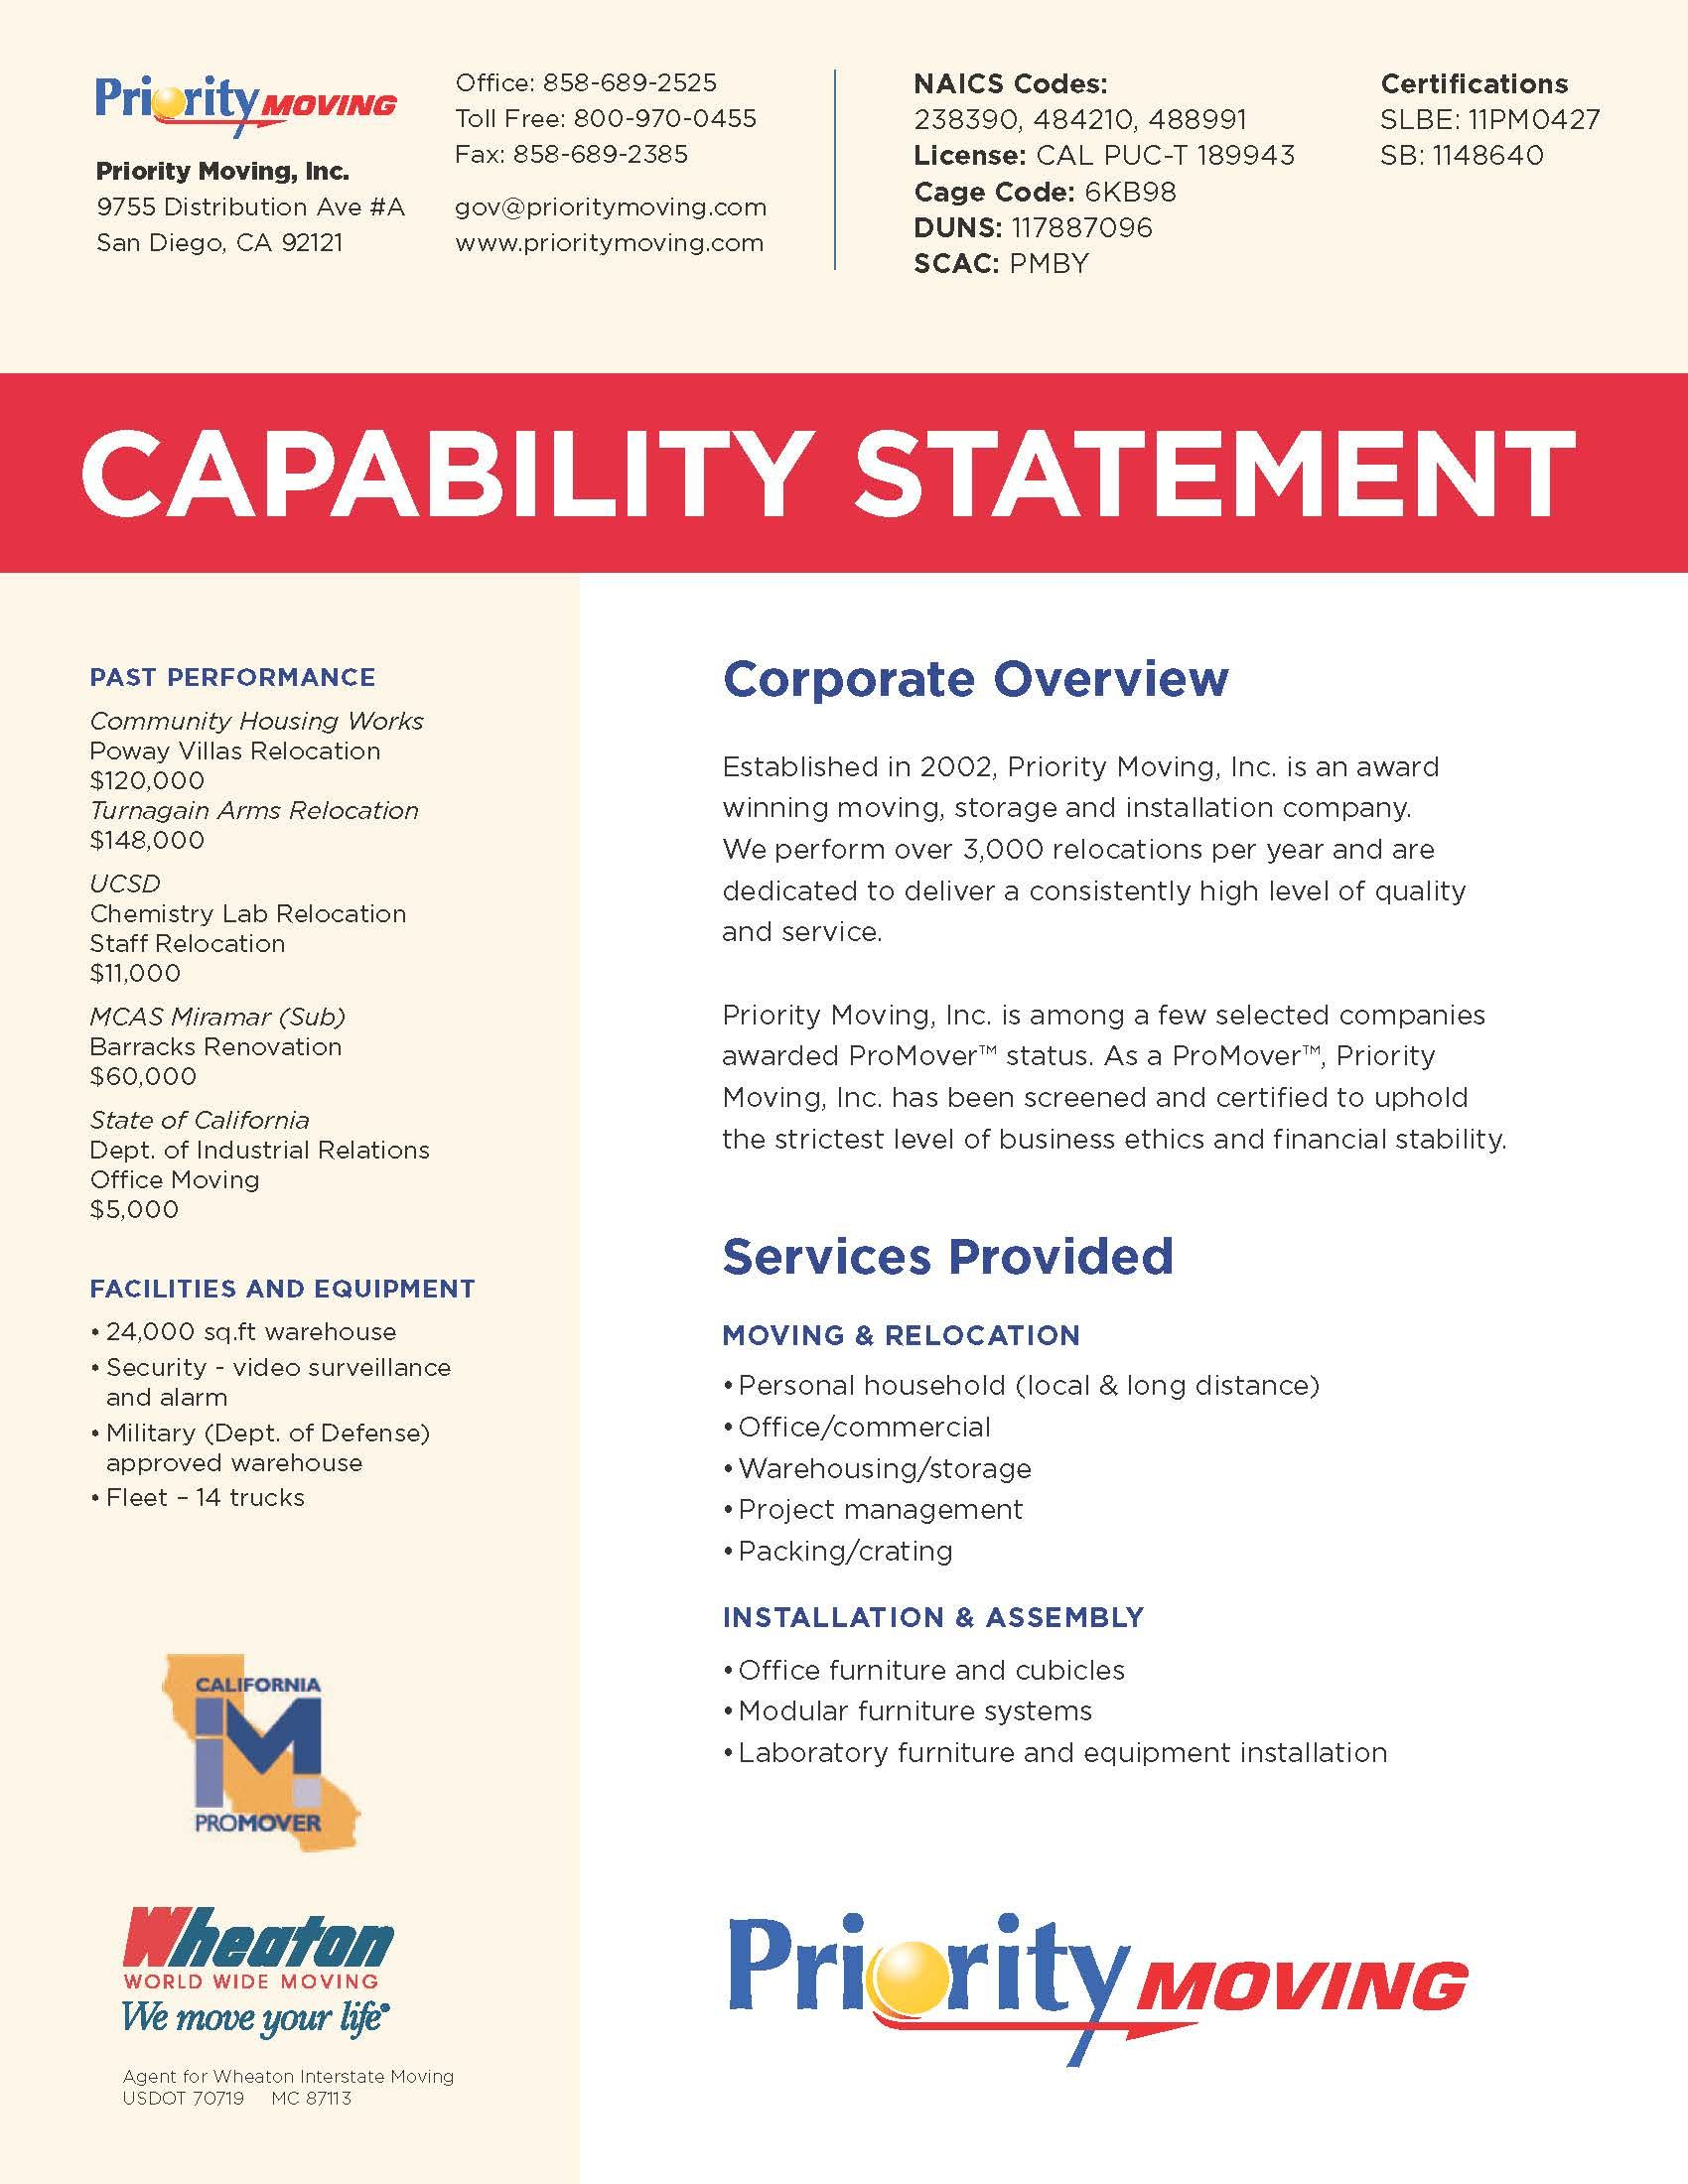 Capability Statement Statement Template Pamphlet Template